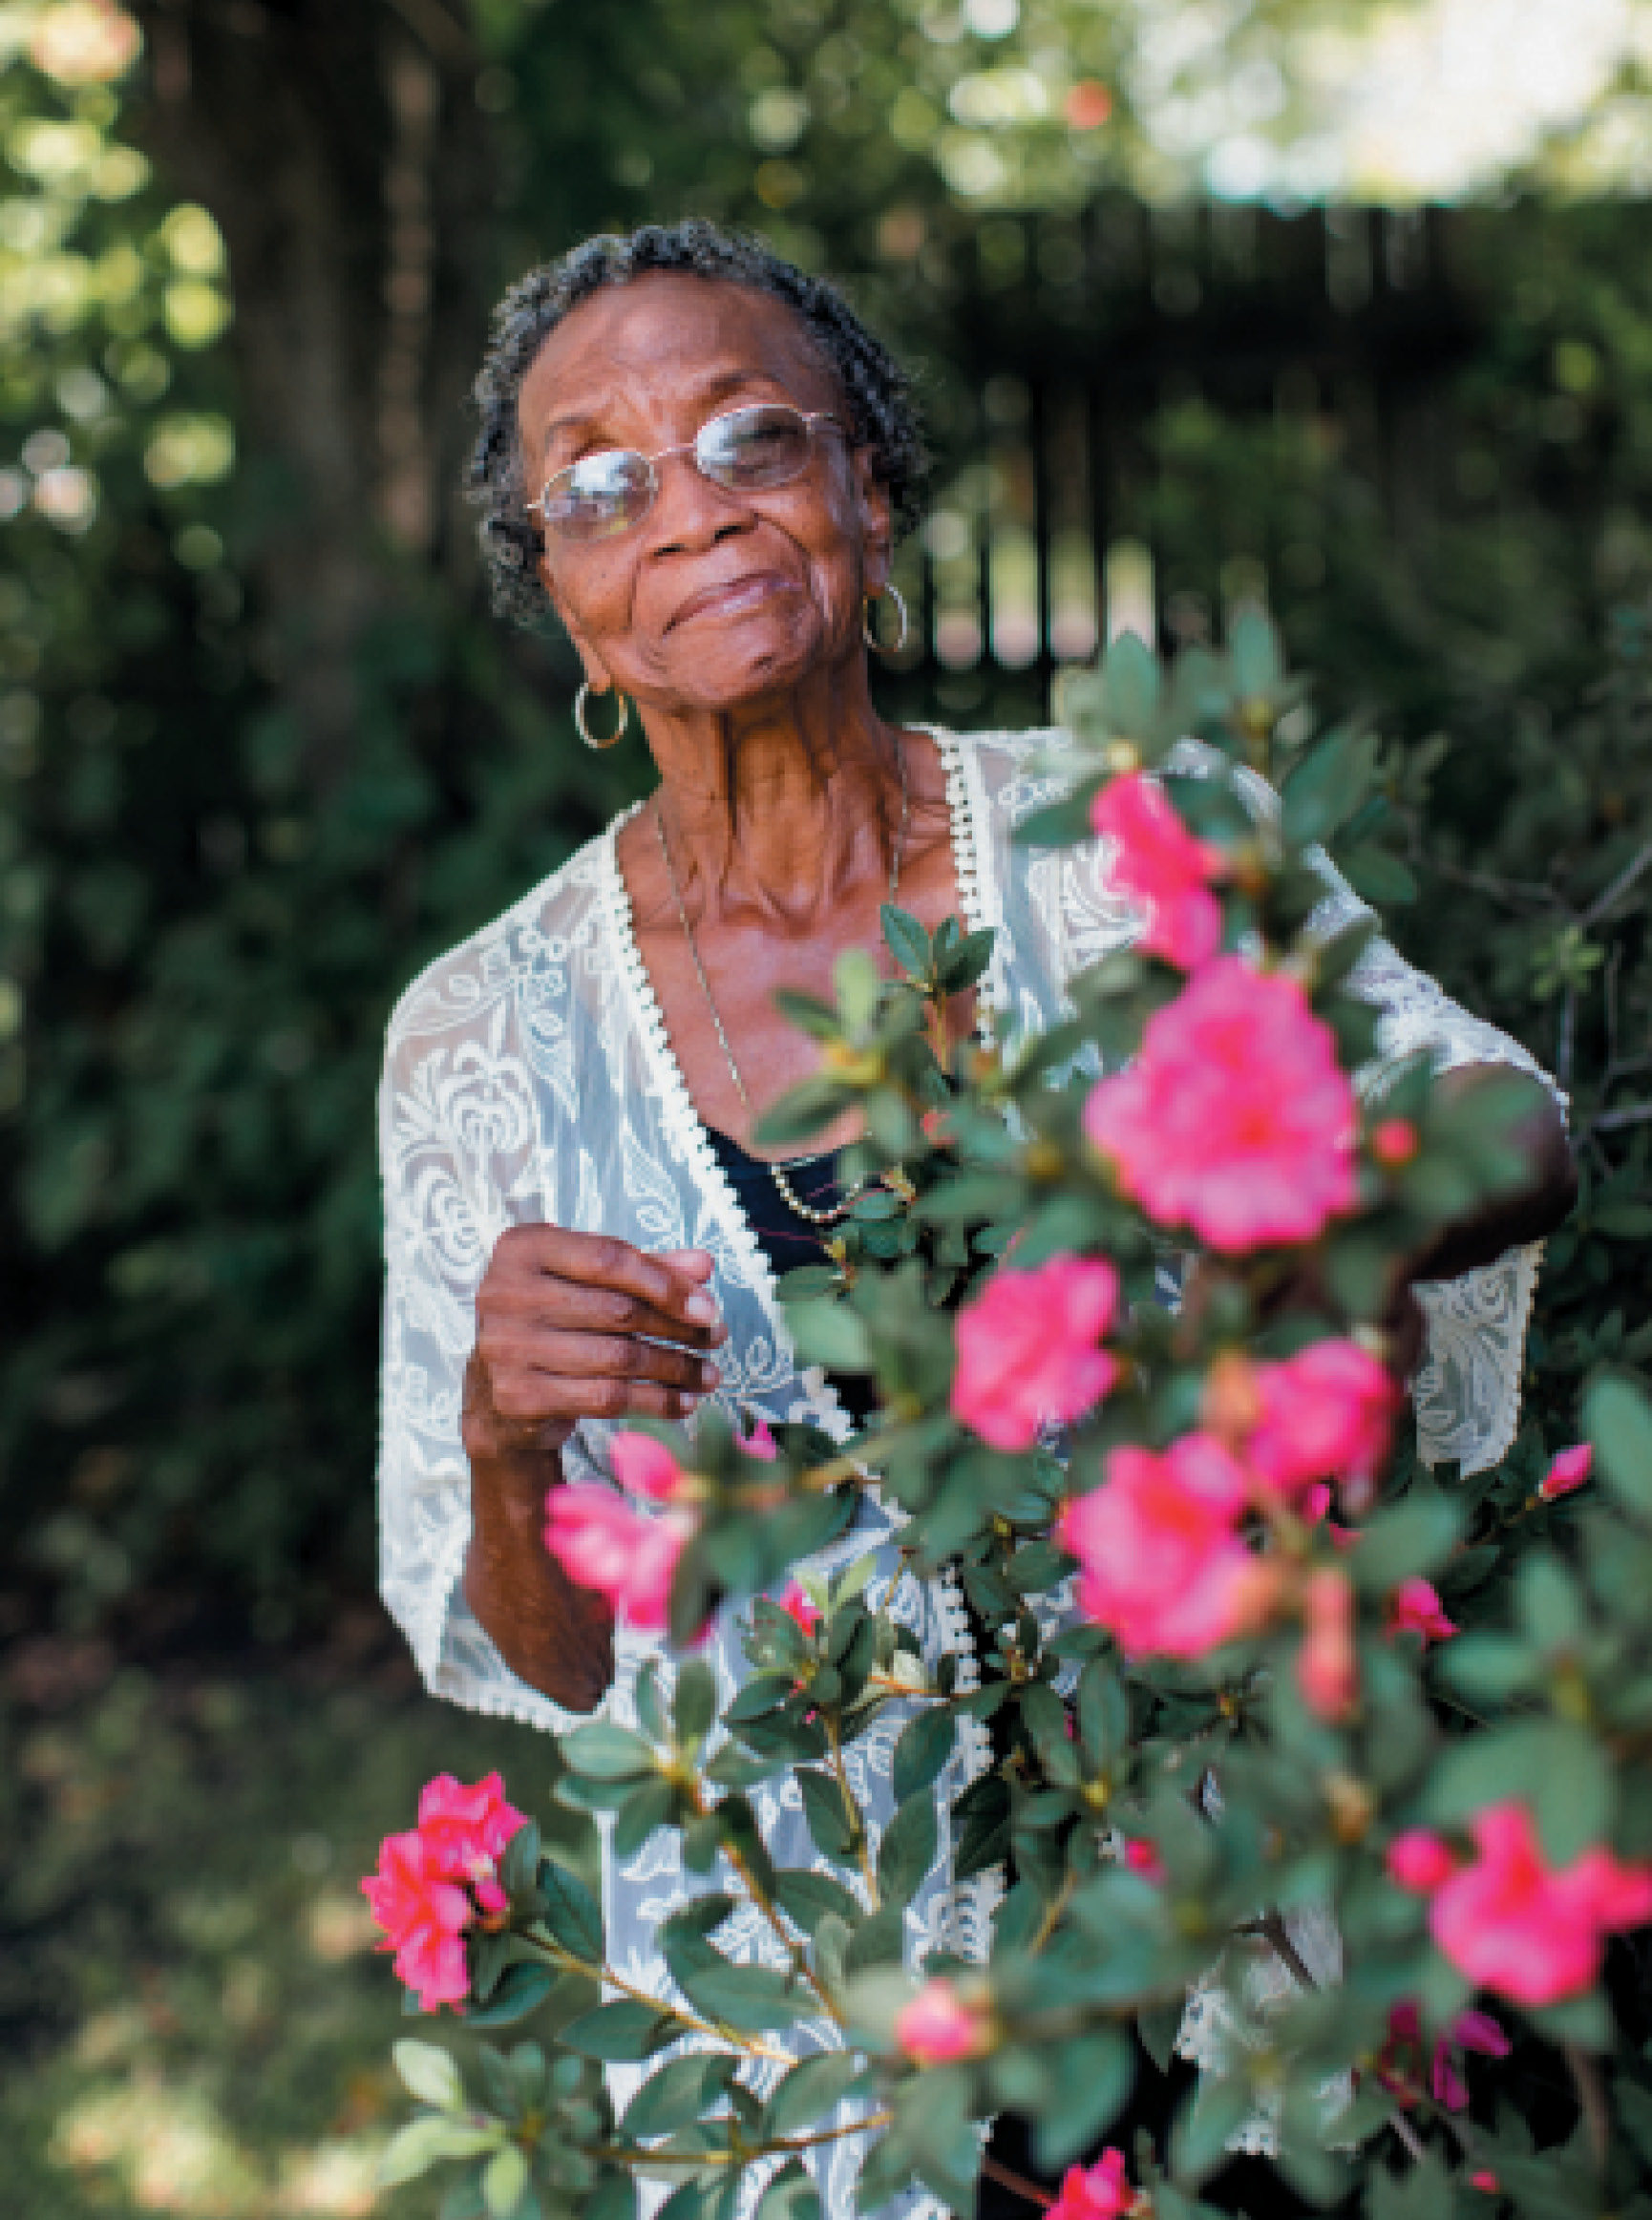 """The Grower: Martin-Carrington's nurturing expertise extends to her garden. """"She took cuttings from my wedding bouquet and somehow made them grow into plants,"""" says her granddaughter Ashley Meader. """"She puts her hands into the dirt, and something different happens. There's a magic and energy about her that literally starts from the ground up. People are drawn to her, and plants too!"""""""